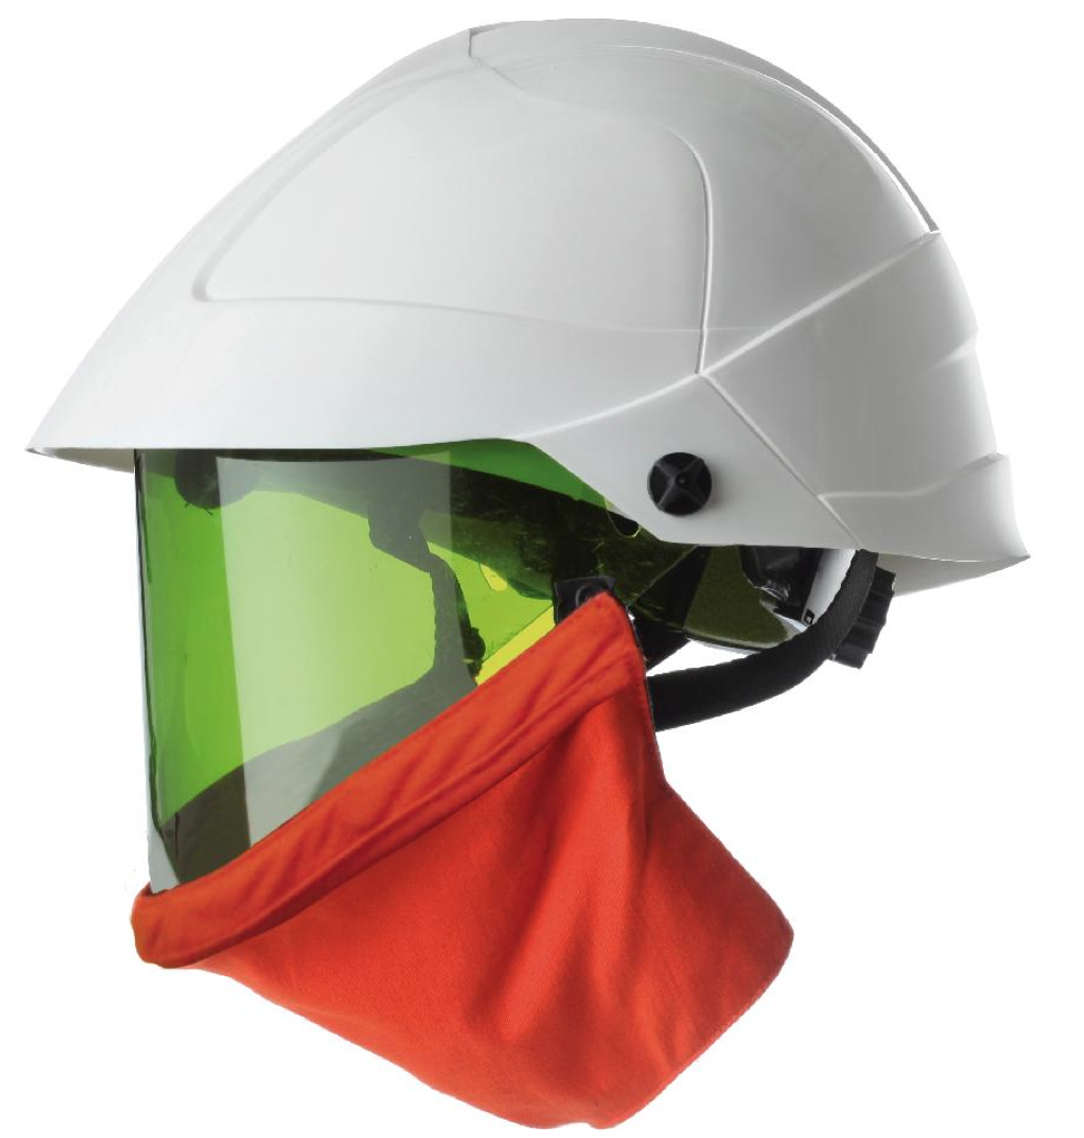 Catu Helmets - Arc Flash Face Shields, Clothing & PPE Protection